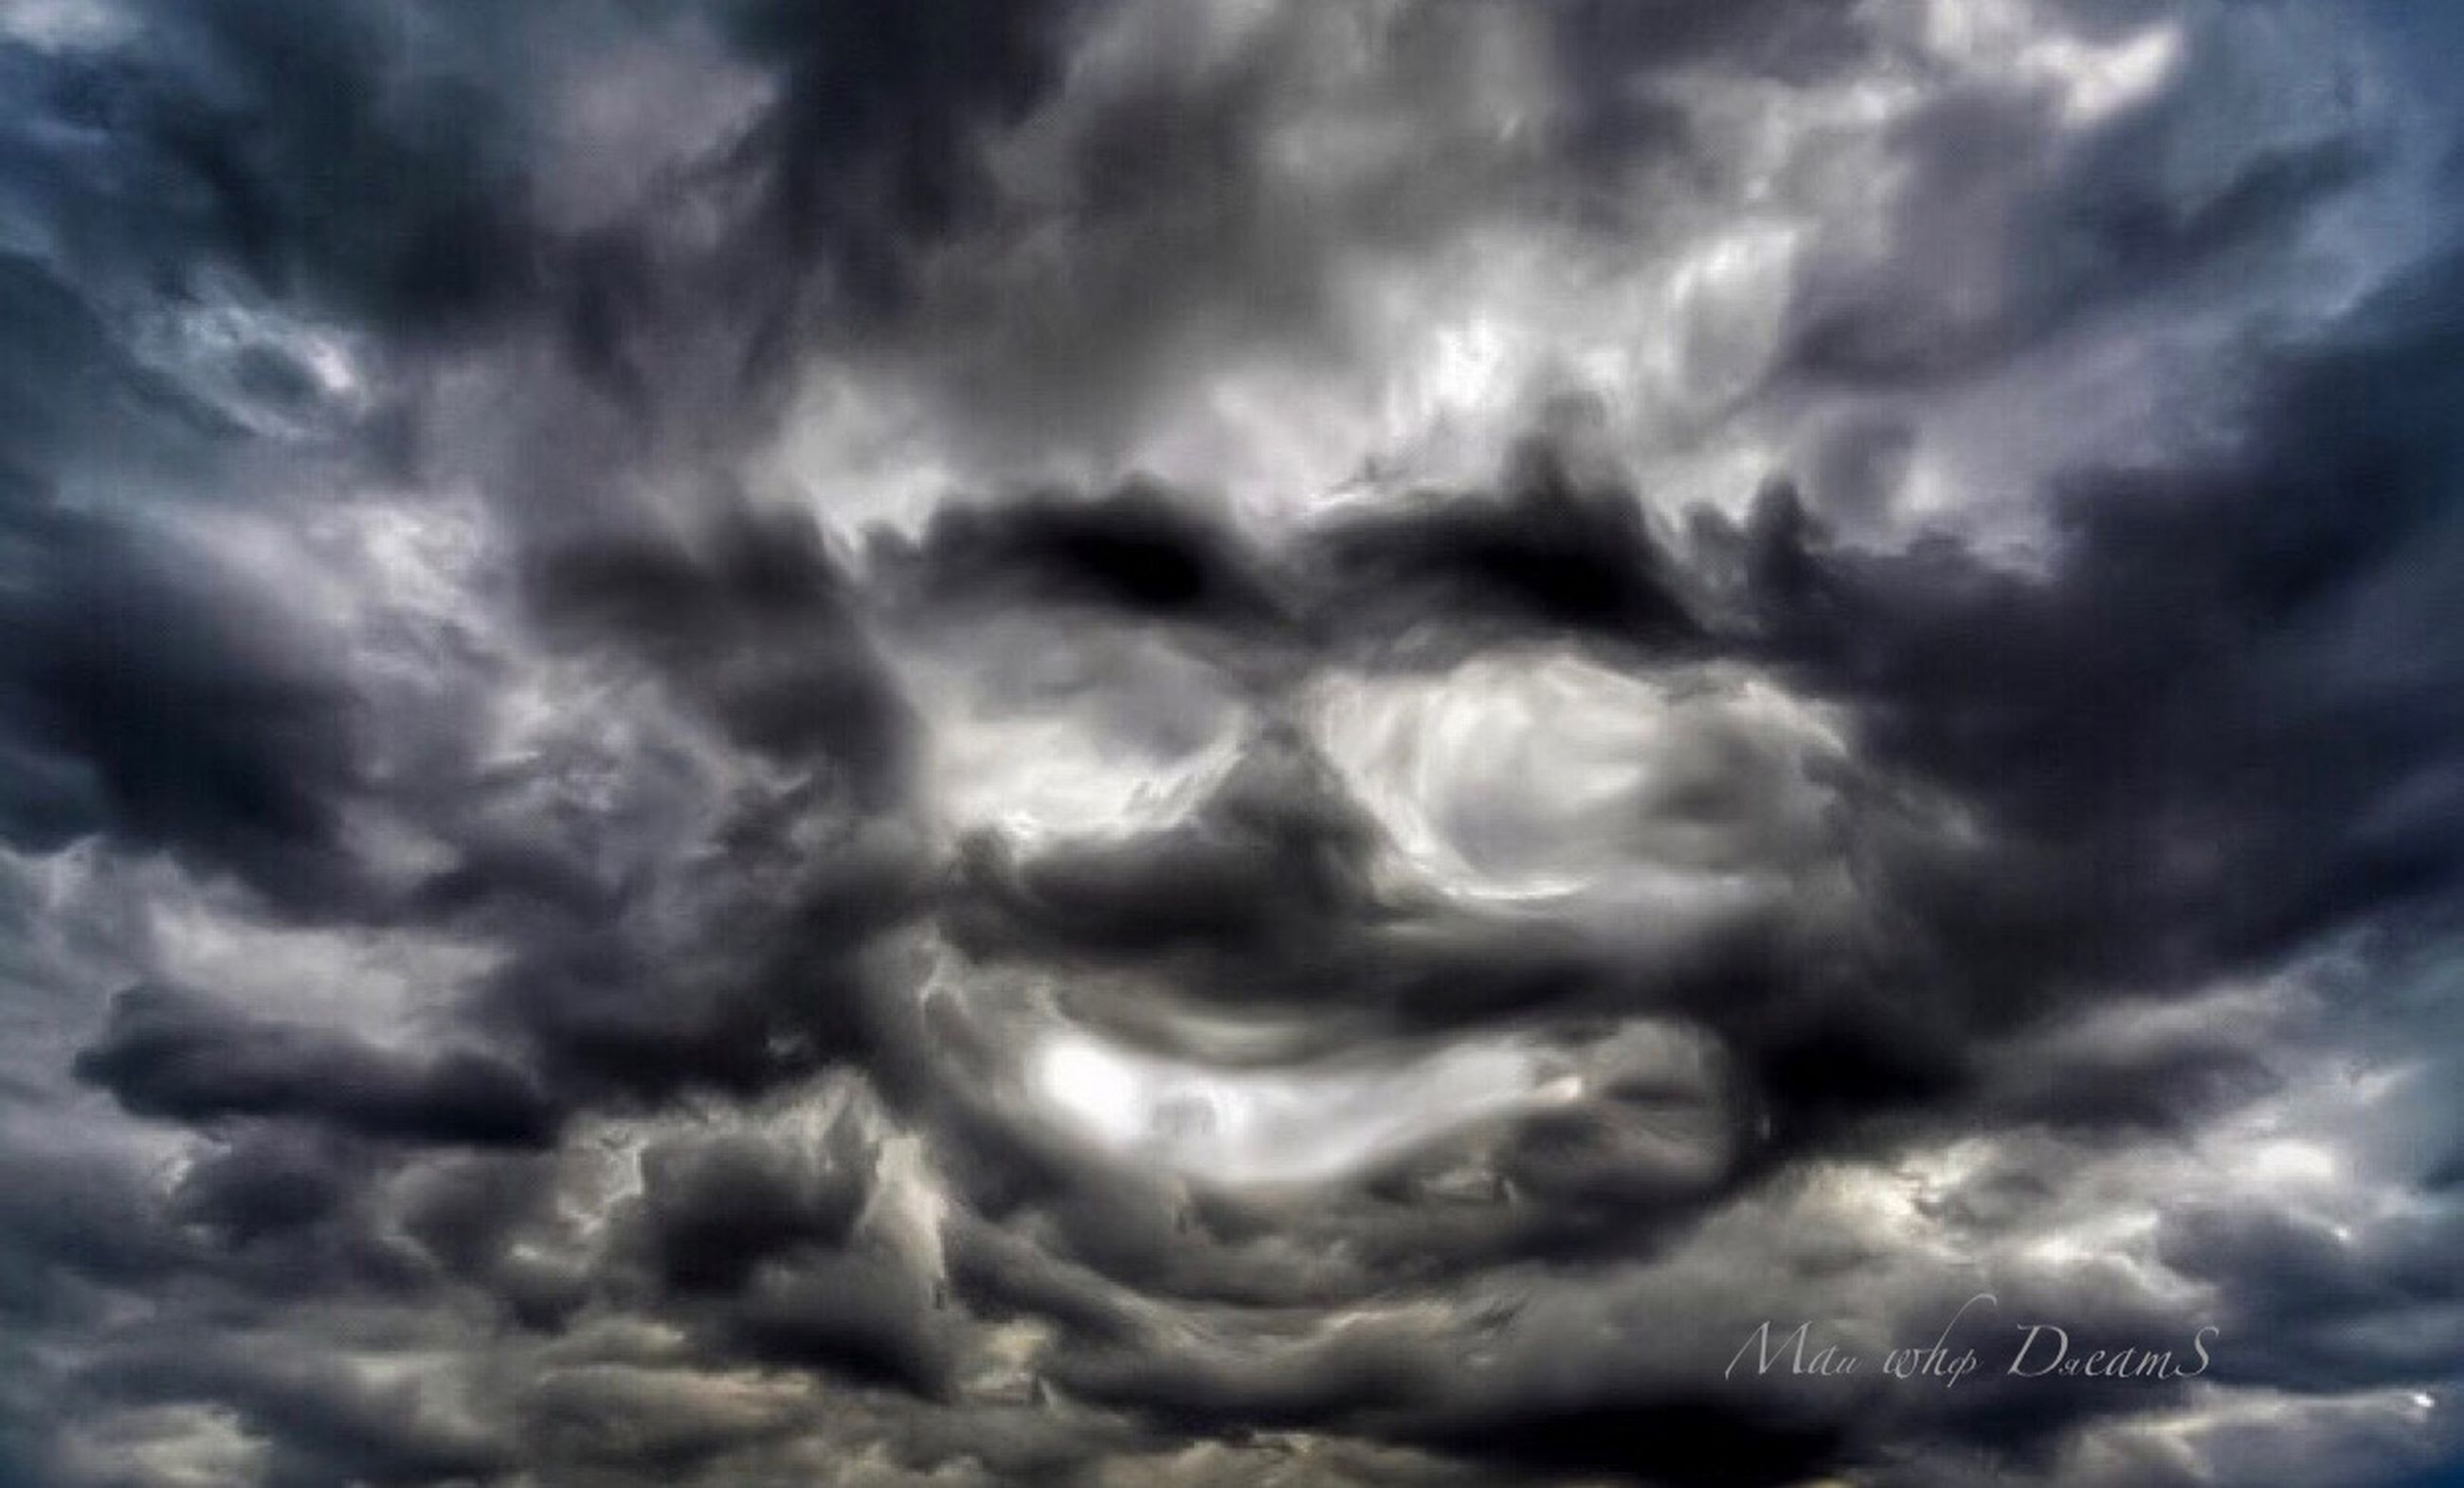 dark, cloud - sky, storm, thunderstorm, environment, natural disaster, curve, sky, wind, dramatic sky, meteorology, overcast, storm cloud, backgrounds, cloudscape, nature, moody sky, torrential rain, no people, rain, ominous, outdoors, power in nature, climate, extreme weather, depression - sadness